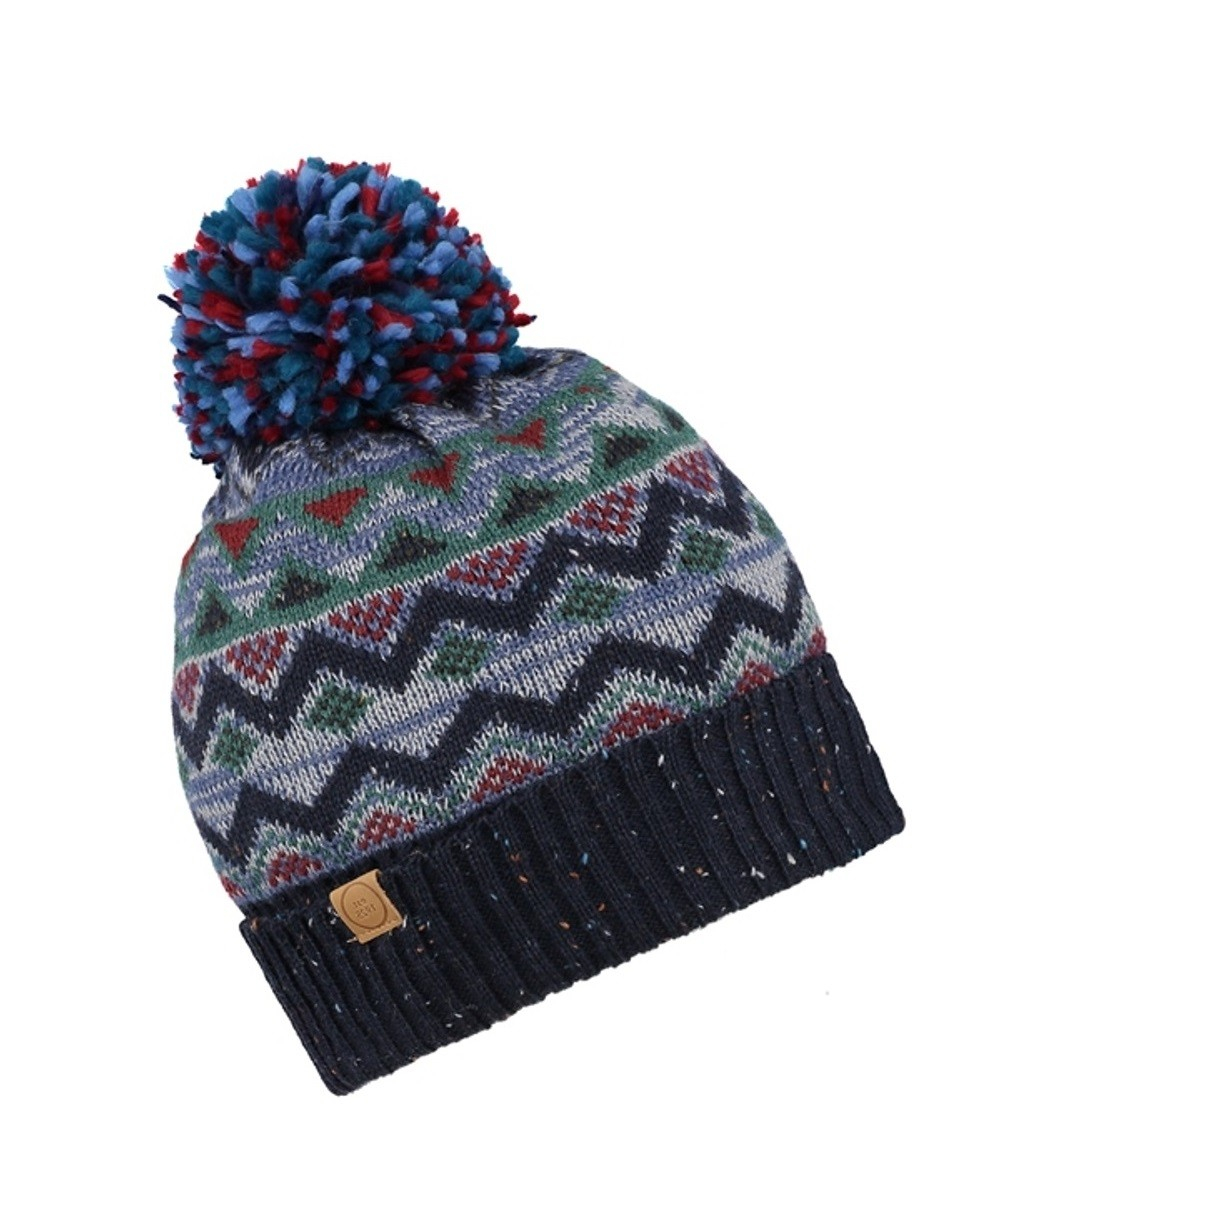 Knitted Pattern Cooper Fair Isle Knitted Pattern Wool Blend Bobble Hat Brown Or Blue